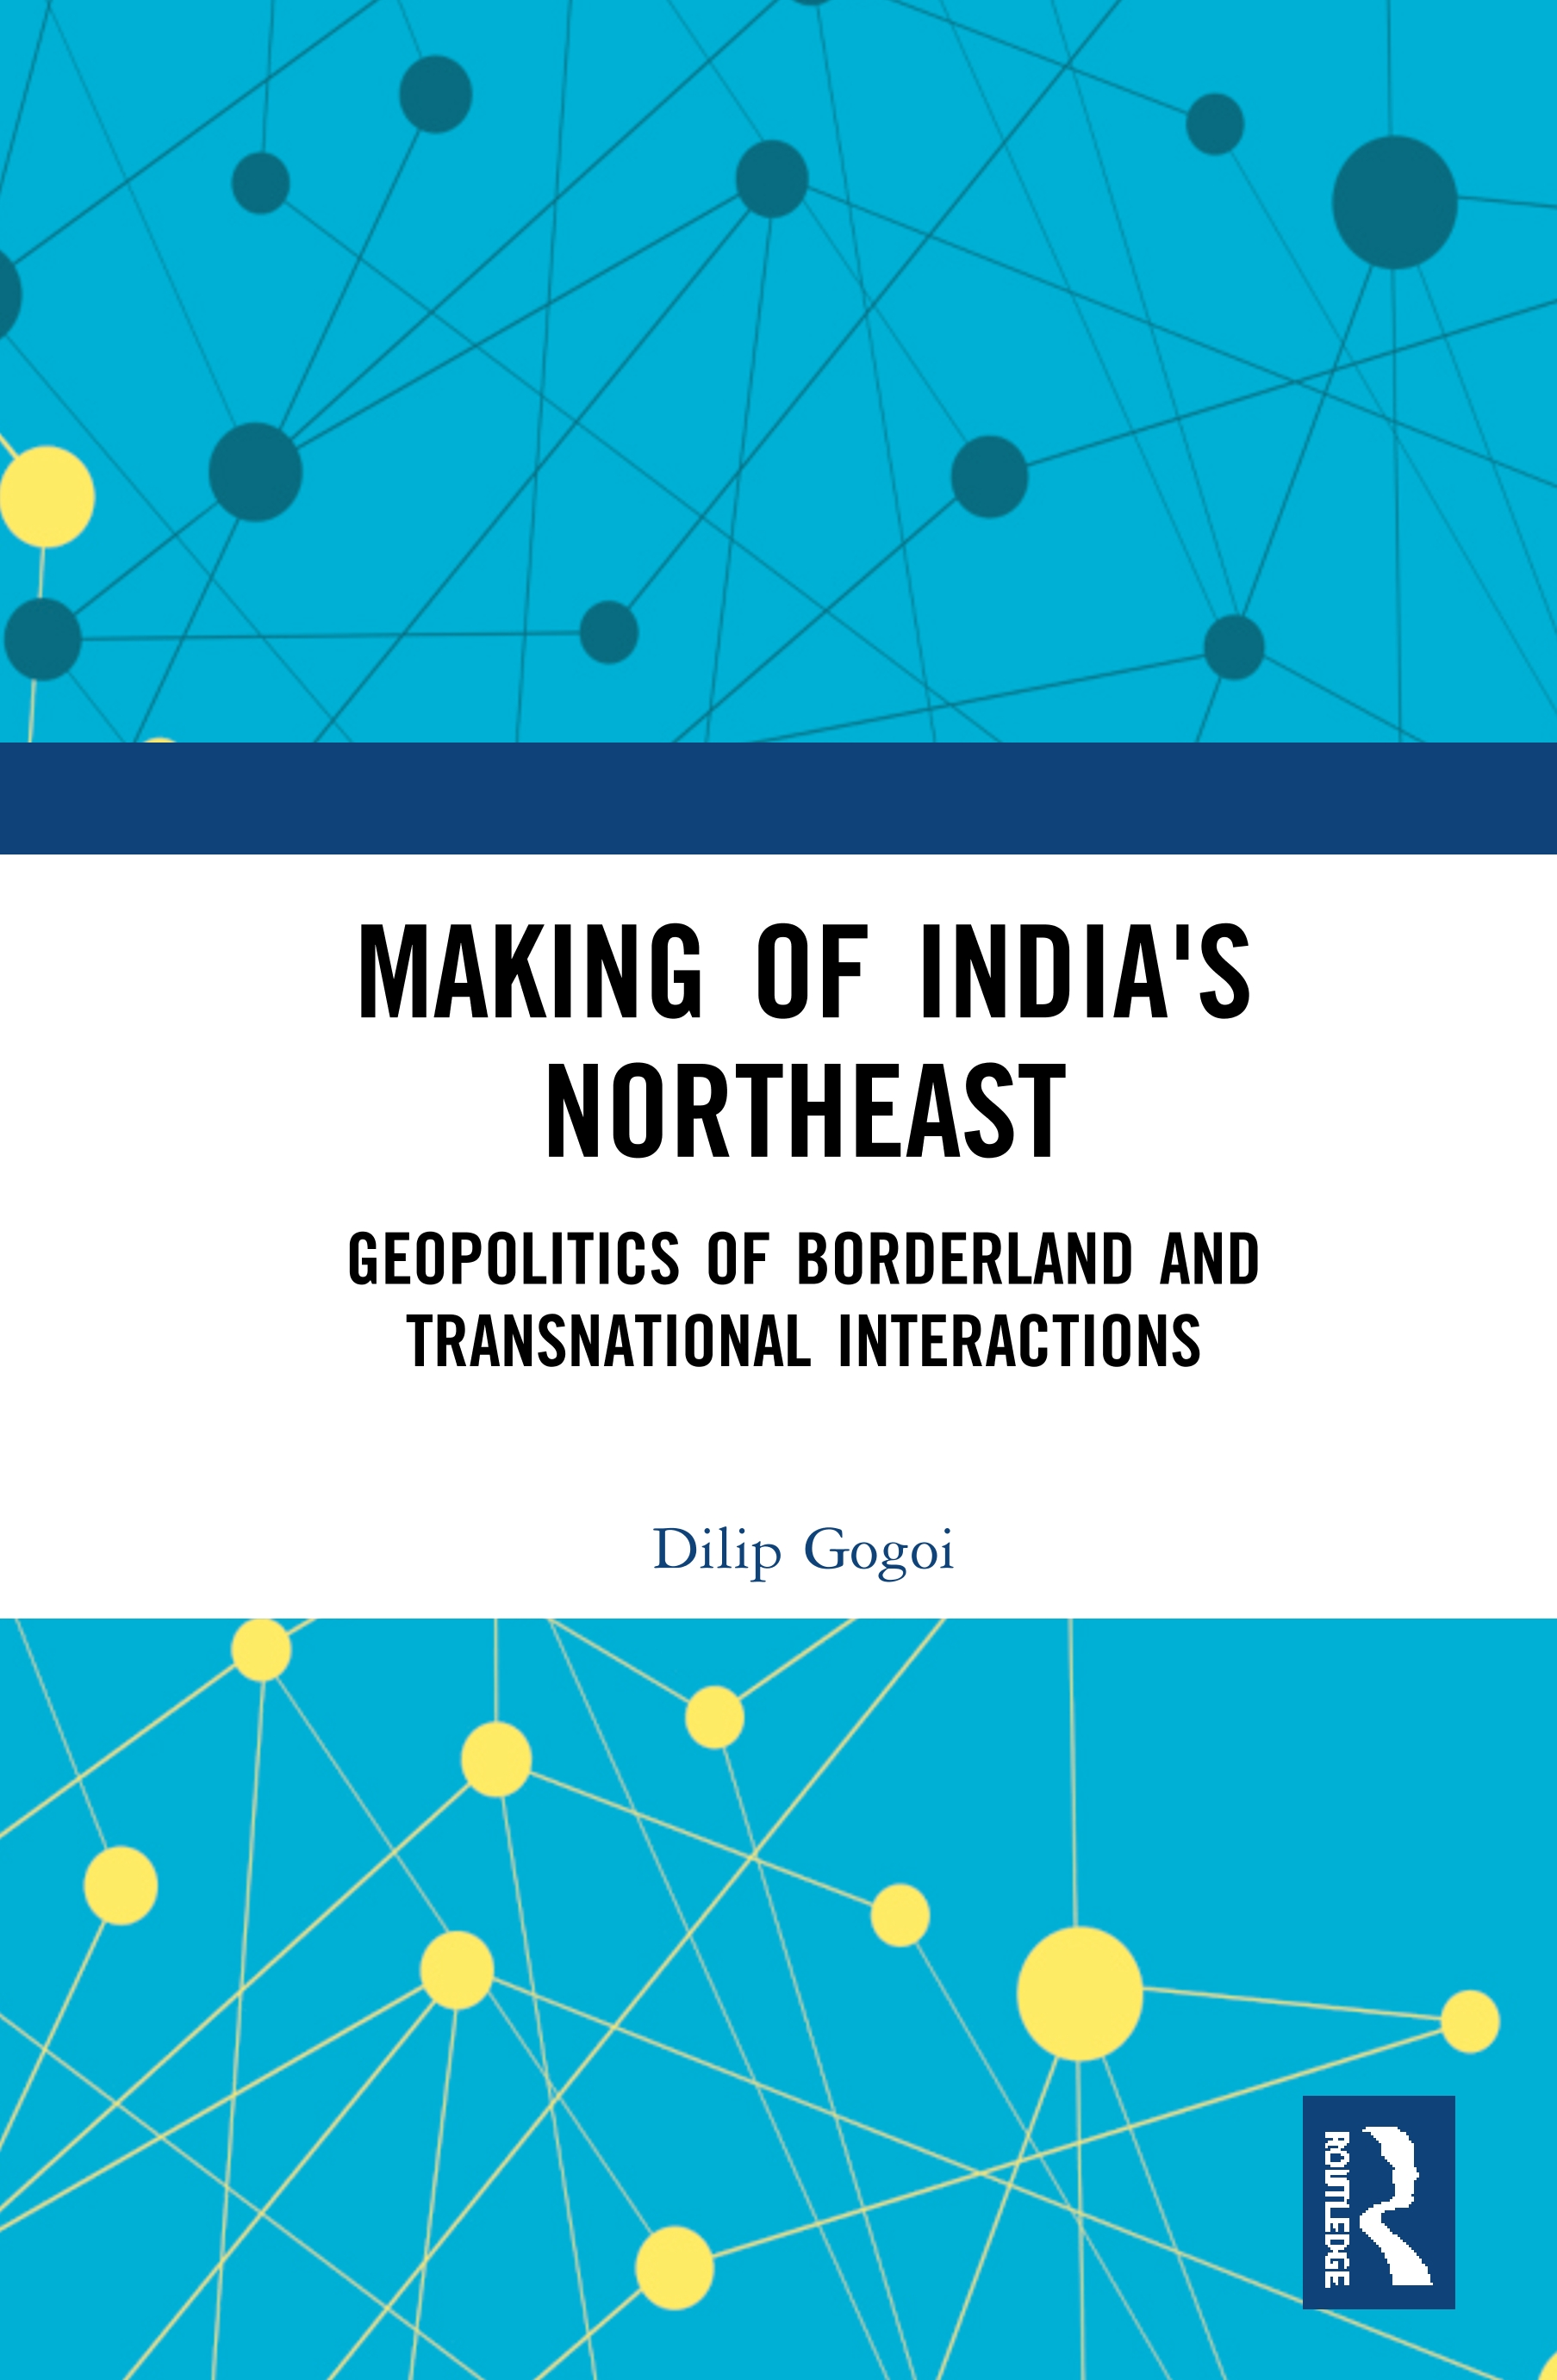 Making of India's Northeast: Geopolitics of Borderland and Transnational Interactions book cover